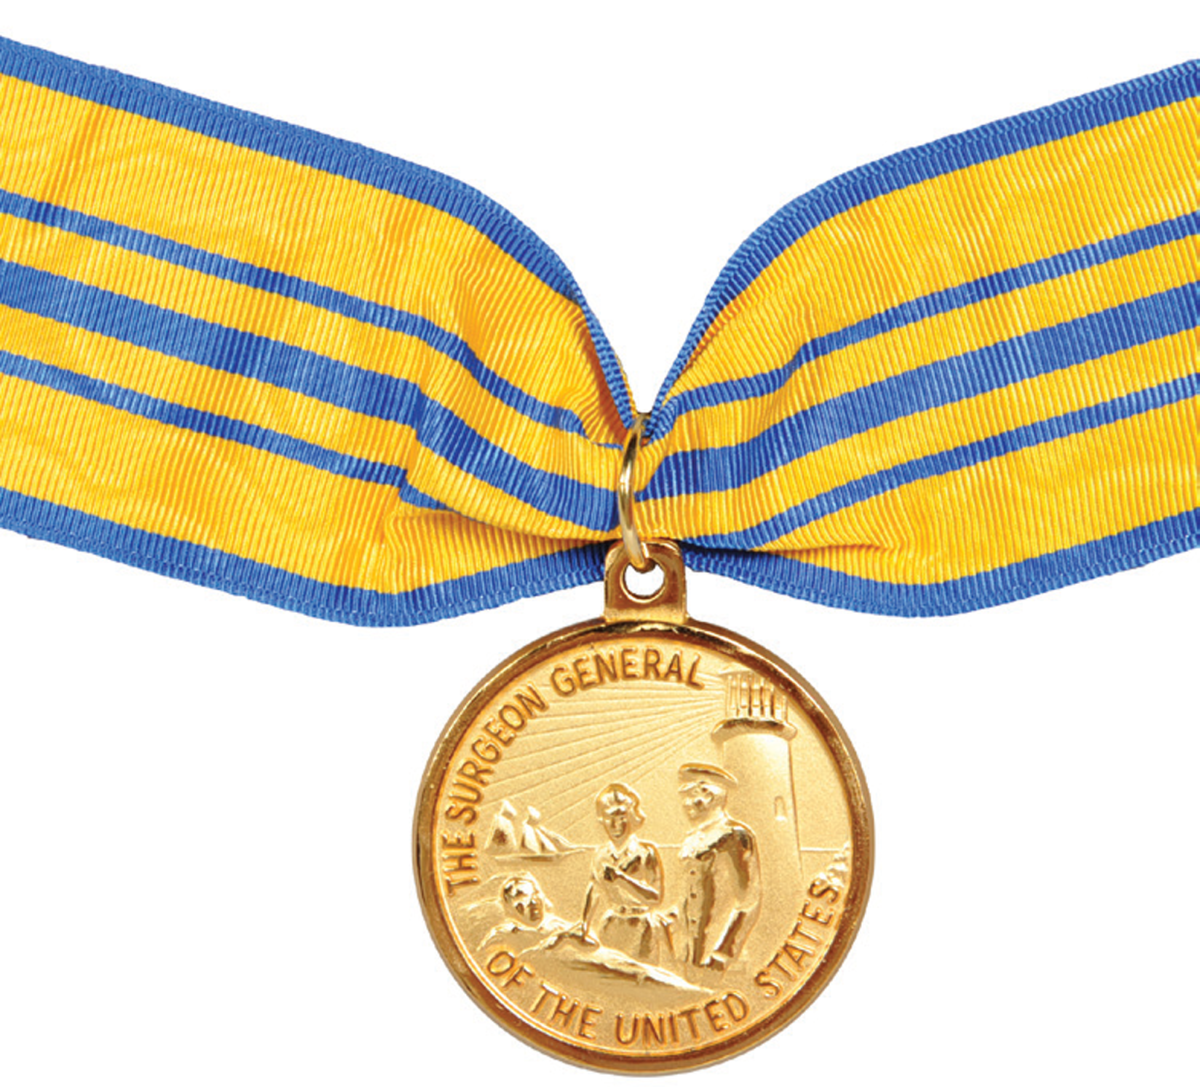 The Surgeon General's Medallion is usually reserved for civilian recipients. Impressive in size and finish, the reverse is blank.